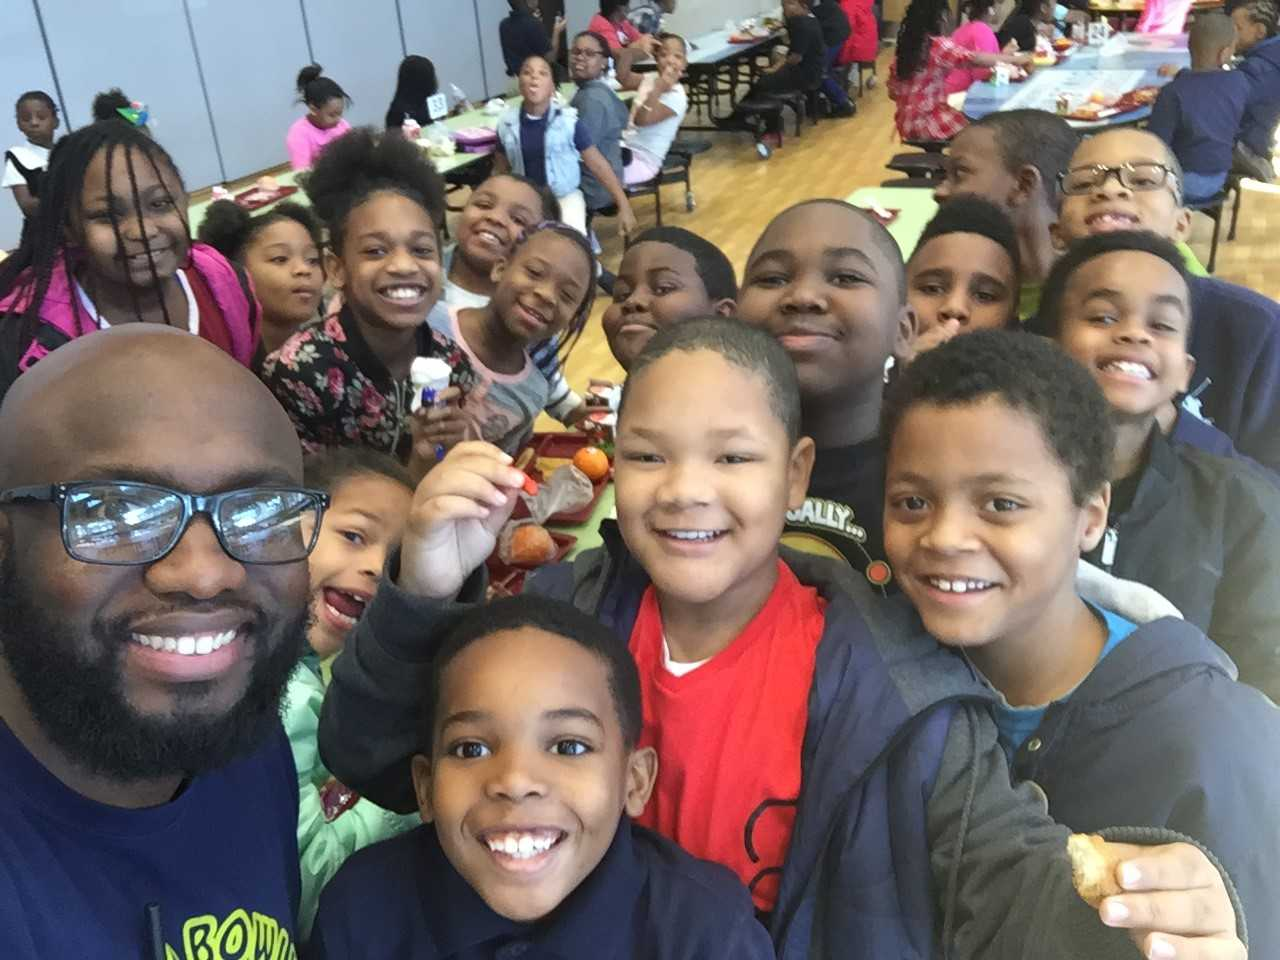 Students At Richard Bowling Elementary School Posing With Their Chief Instructional Leader